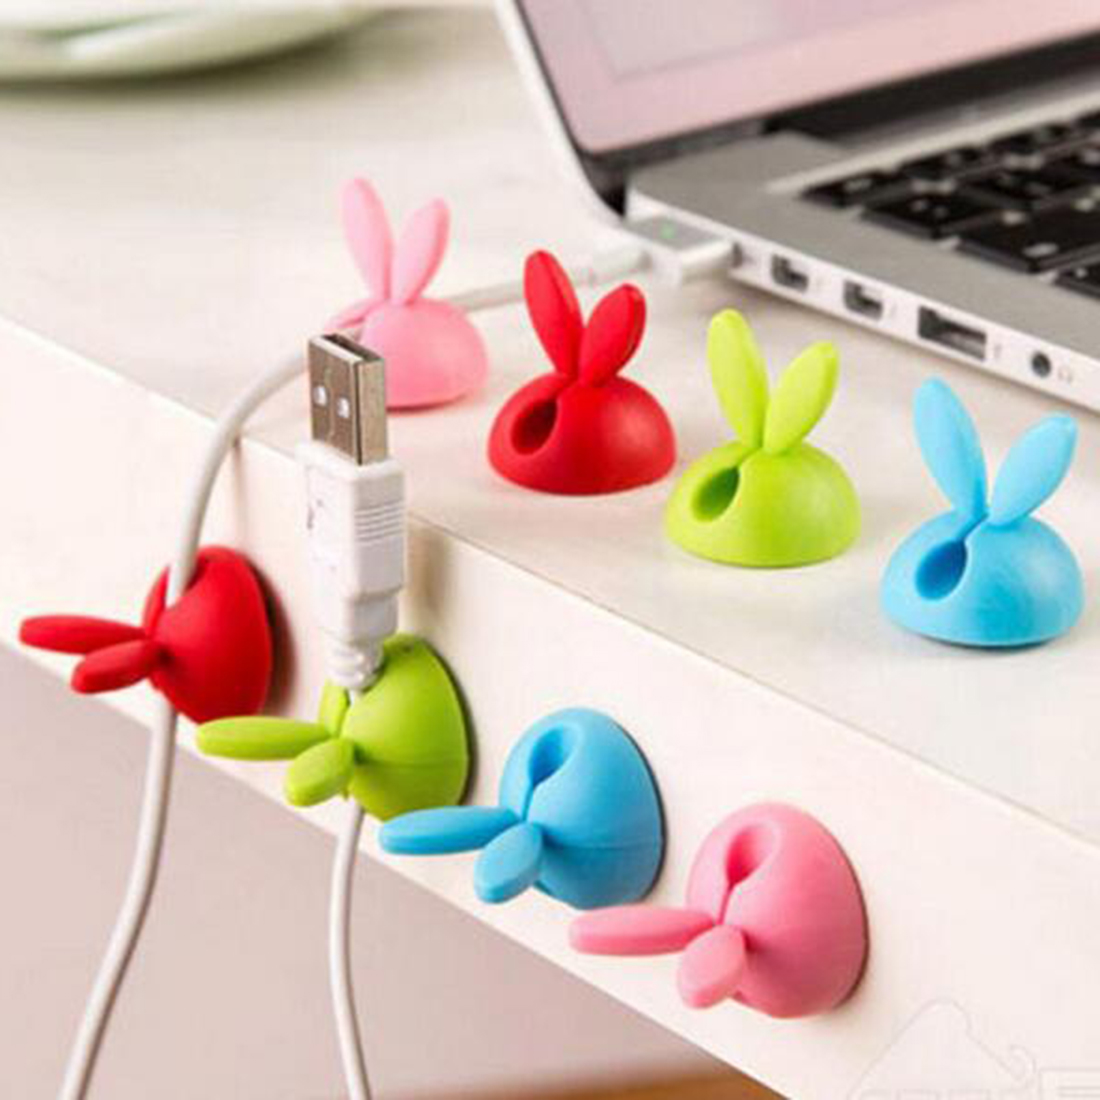 Accessories & Parts Faithful Marsnaska 4pcs Bunny Ear Rabbit Cable Clips Cord Ties Holder Cable Fastener Desk Tidy Organiser Wire Cord Usb Charger Holder Relieving Rheumatism